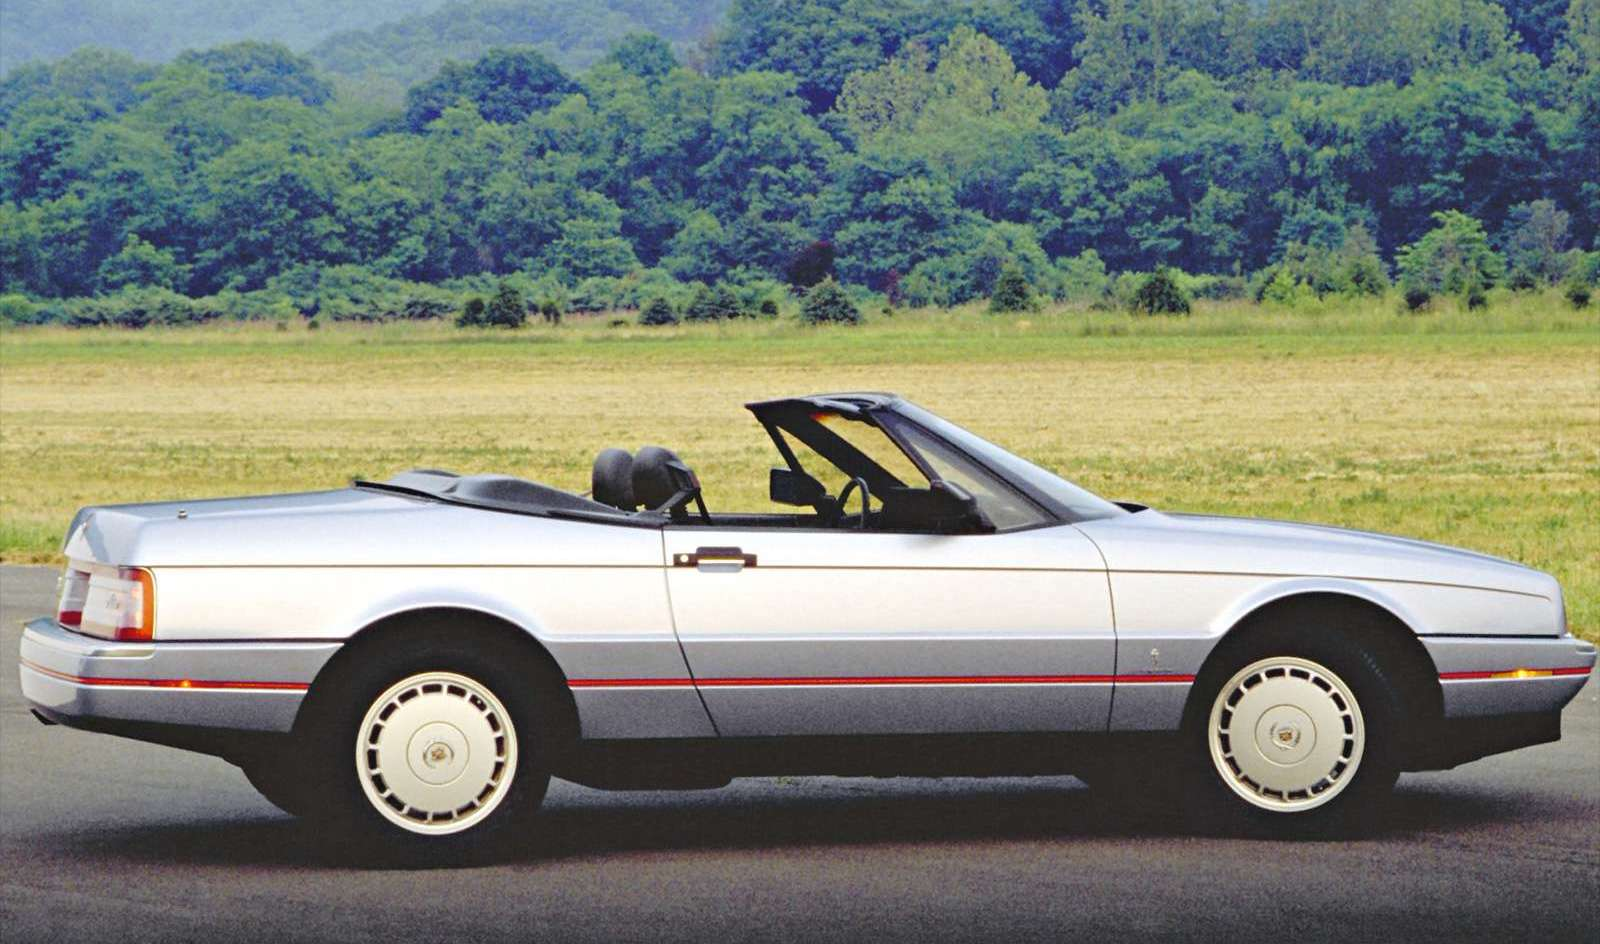 1989 Cadillac Allante side profile